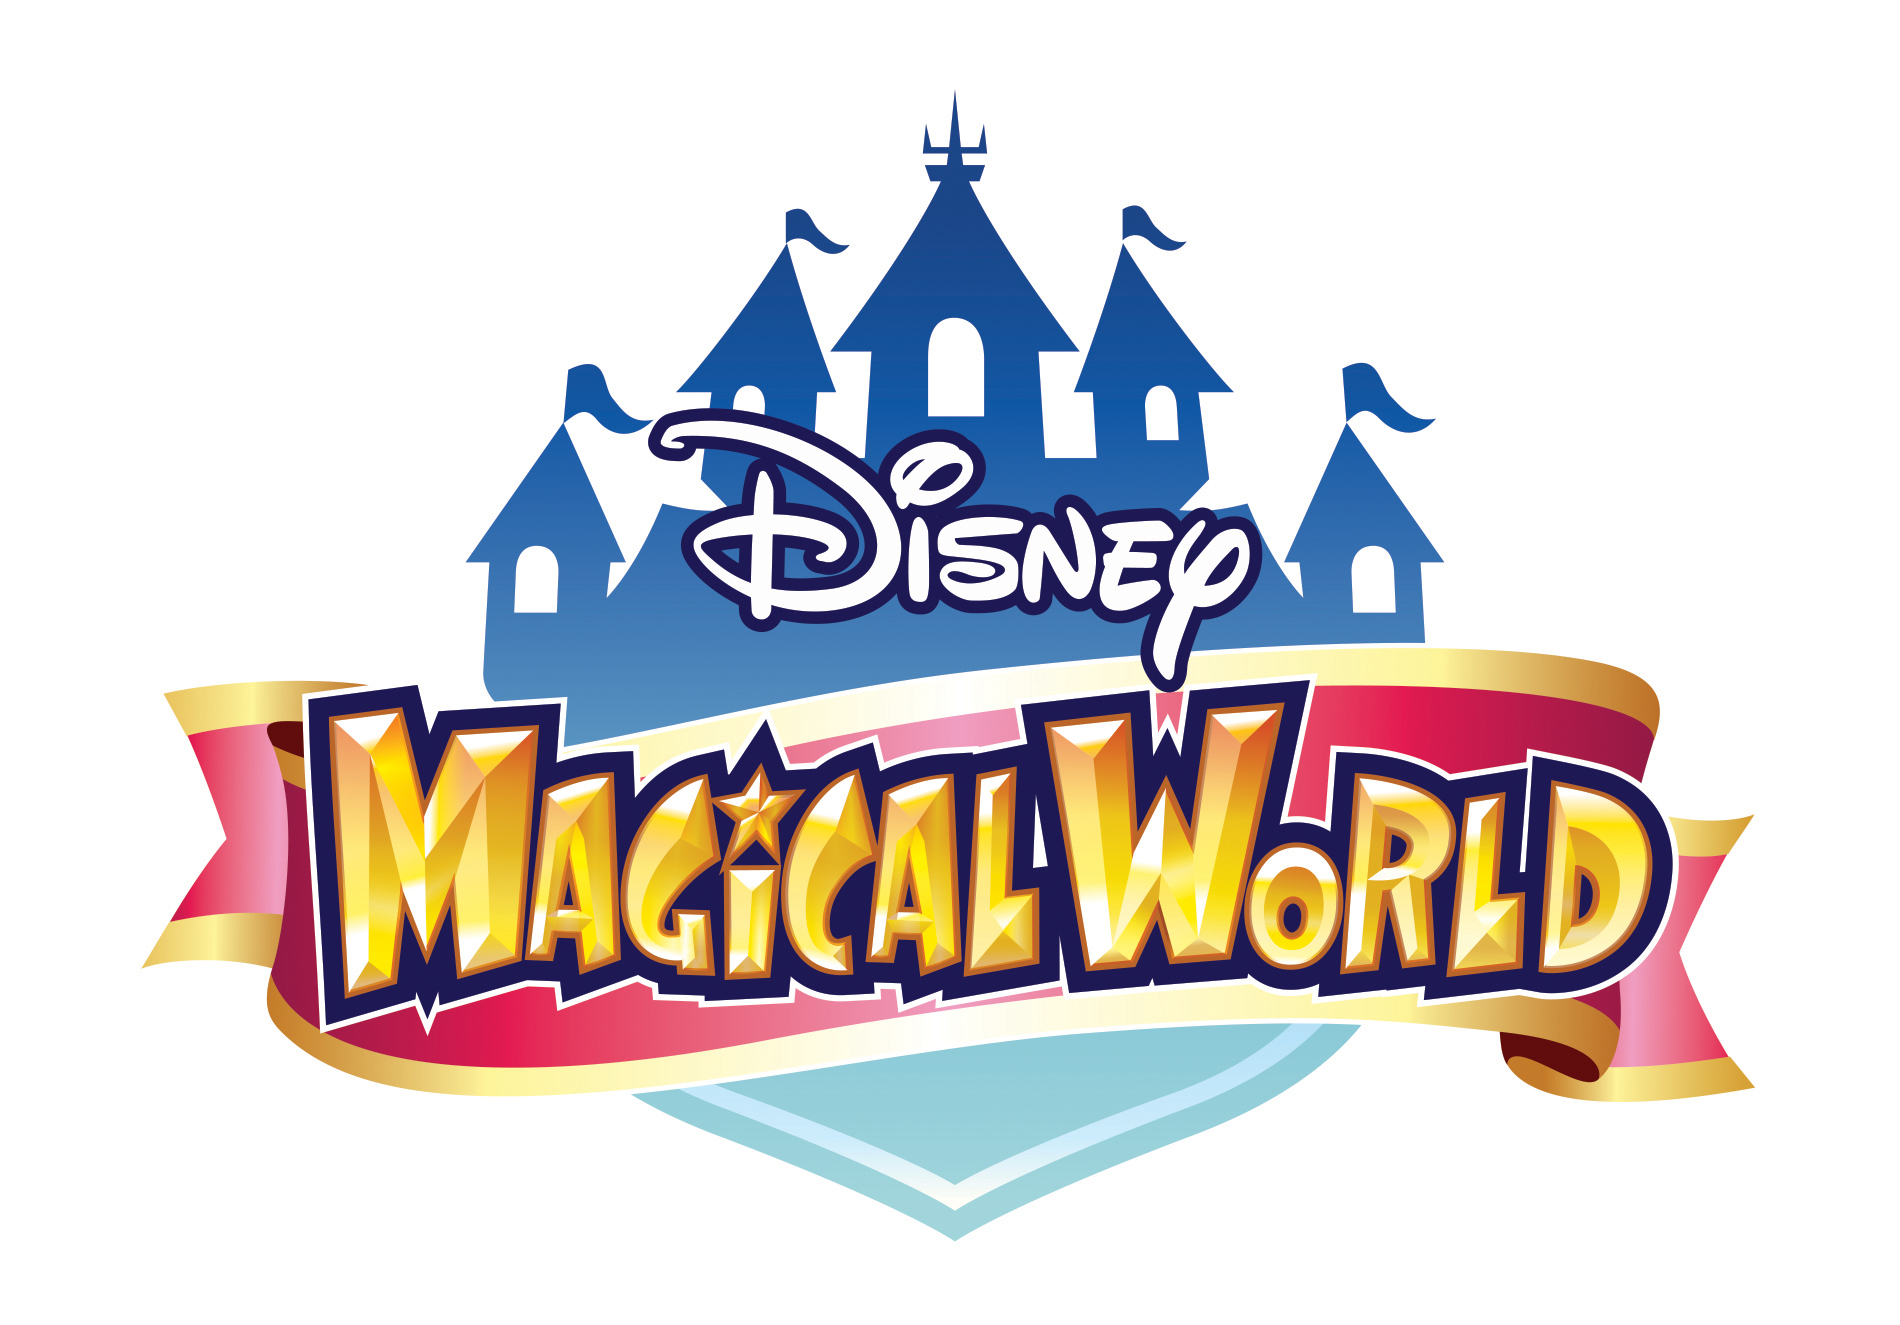 Disney Magical World is a new game featuring dozens of Disney characters in a variety of Disney-themed worlds. Players can customize their characters with hundreds of Disney-themed outfits and accessories, all while managing a café, planting crops and collecting Disney character cards. Players help different characters solve problems or find missing items. The game launches in stores and in the Nintendo eShop on April 11.